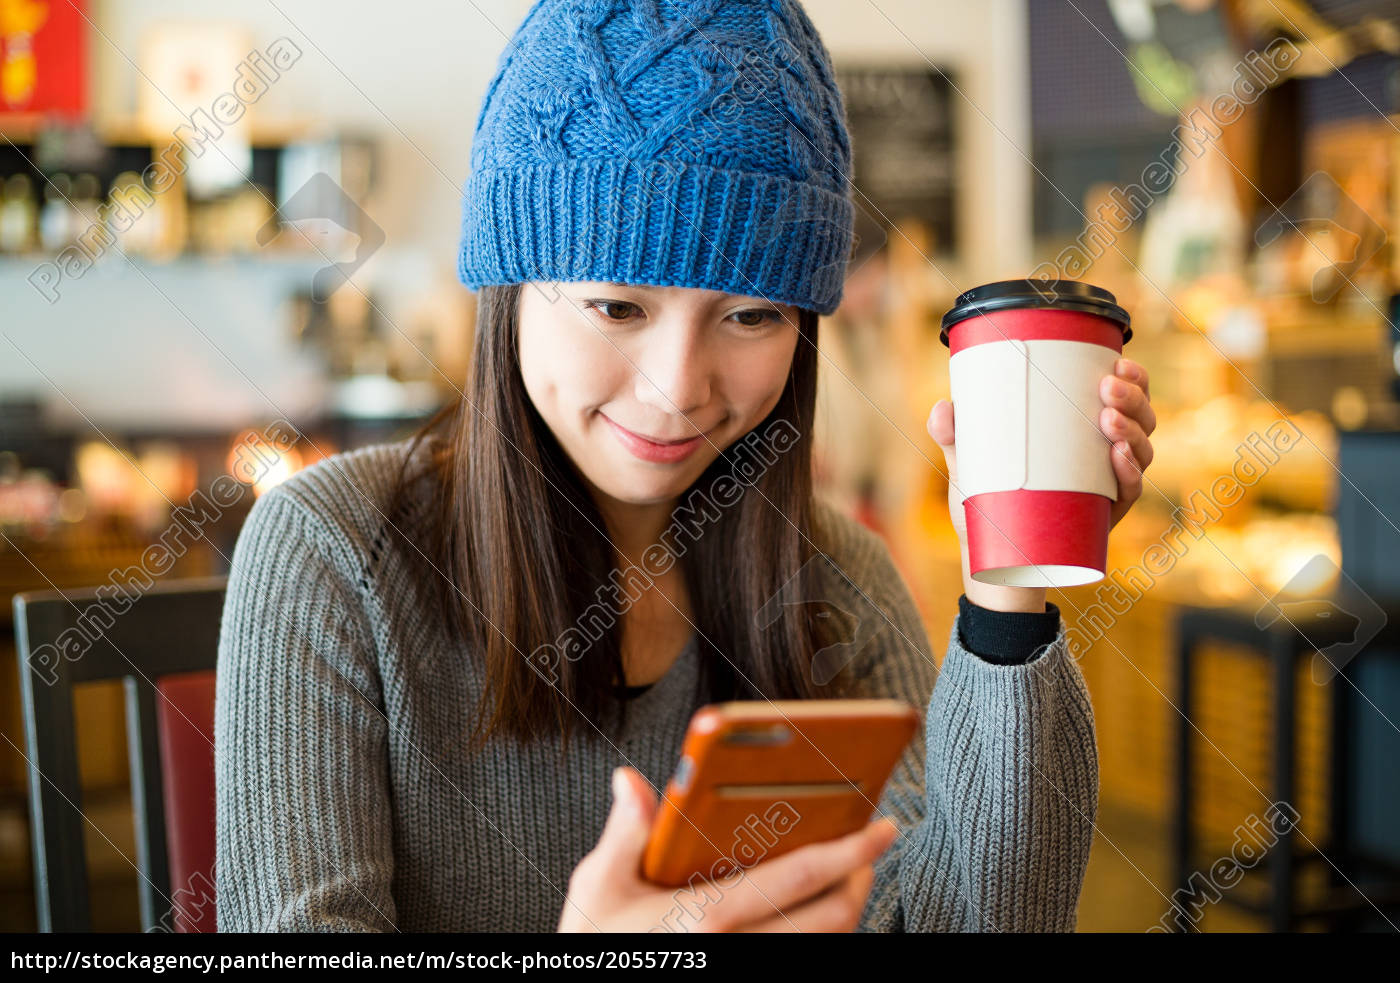 woman, using, mobile, phone, inside, cafe - 20557733